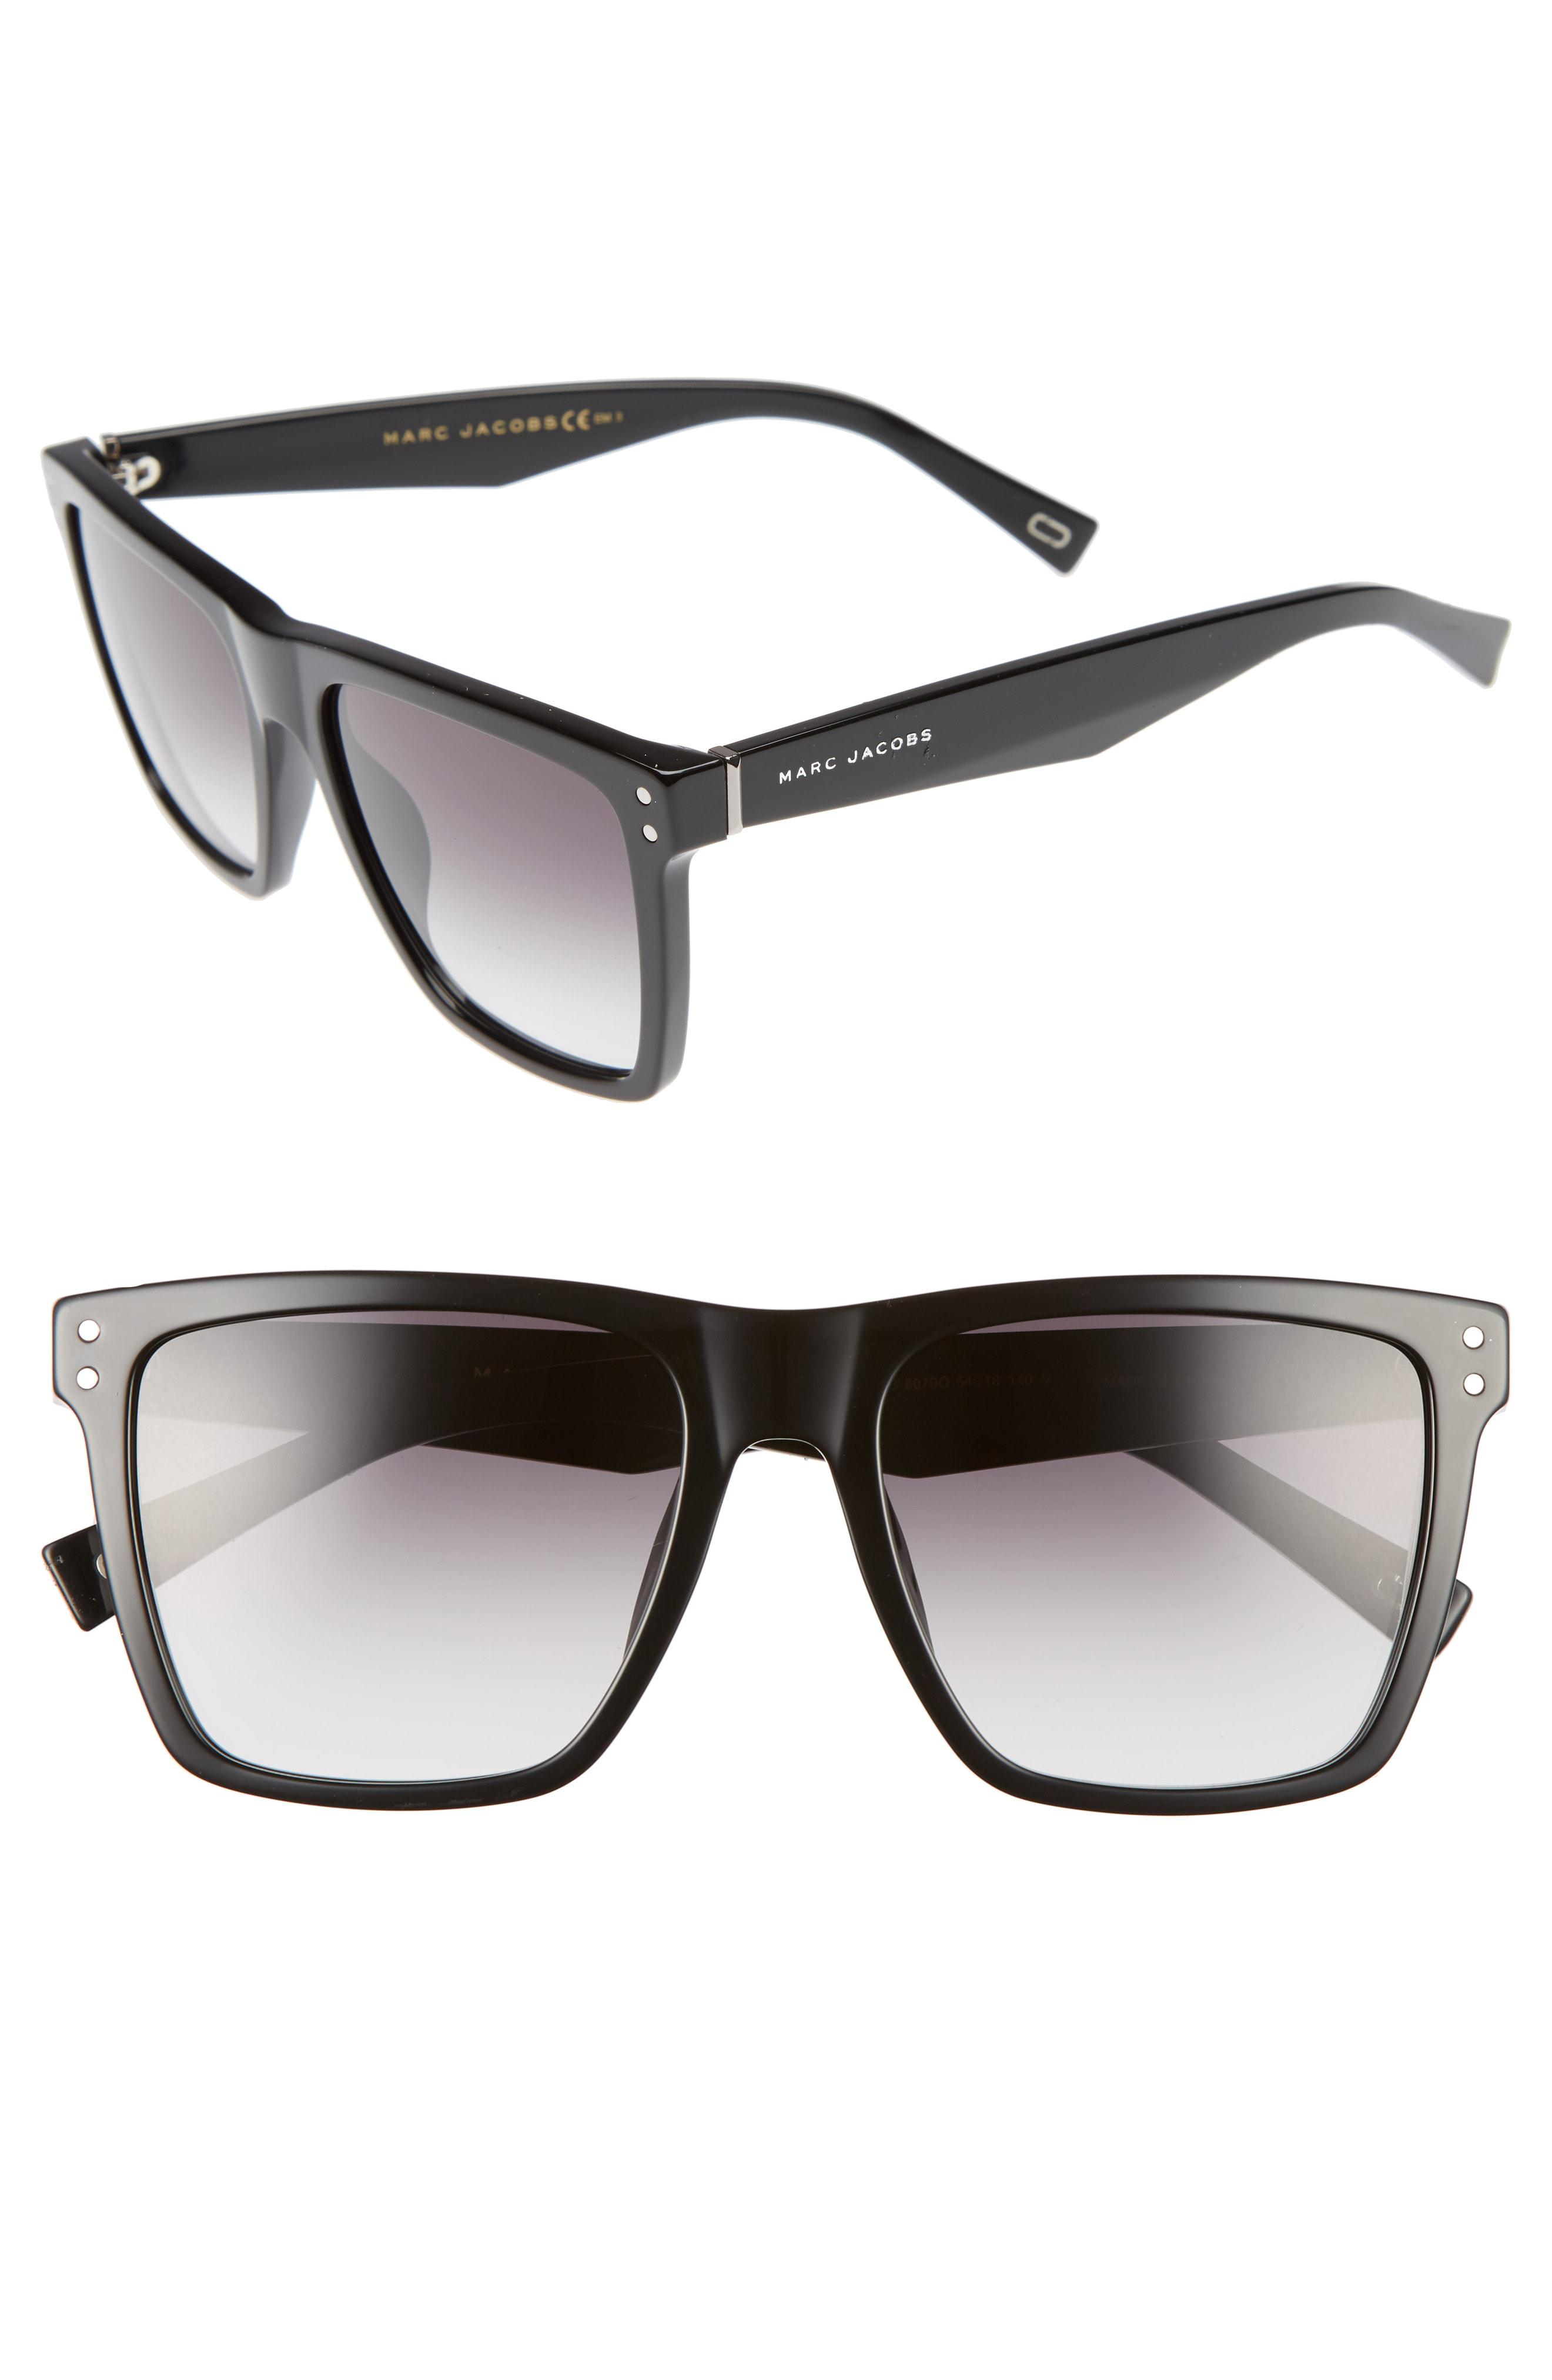 d6036a3c8a Lyst - Marc Jacobs 54mm Flat Top Gradient Square Frame Sunglasses in ...